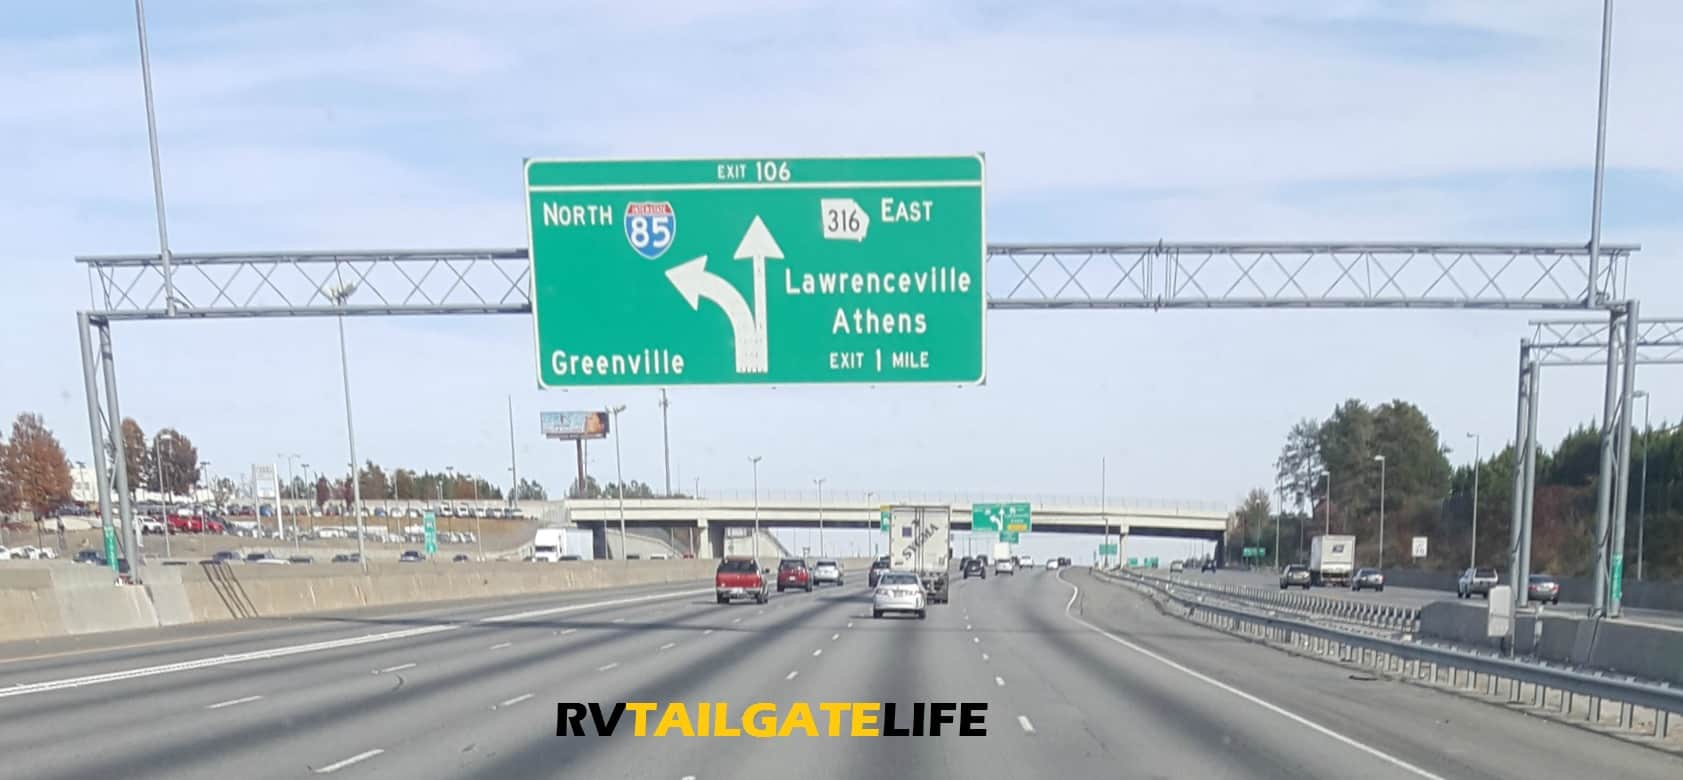 "GA Highway 316 is otherwise known as the ""Highway to Hell"" to Georgia Tech fans"